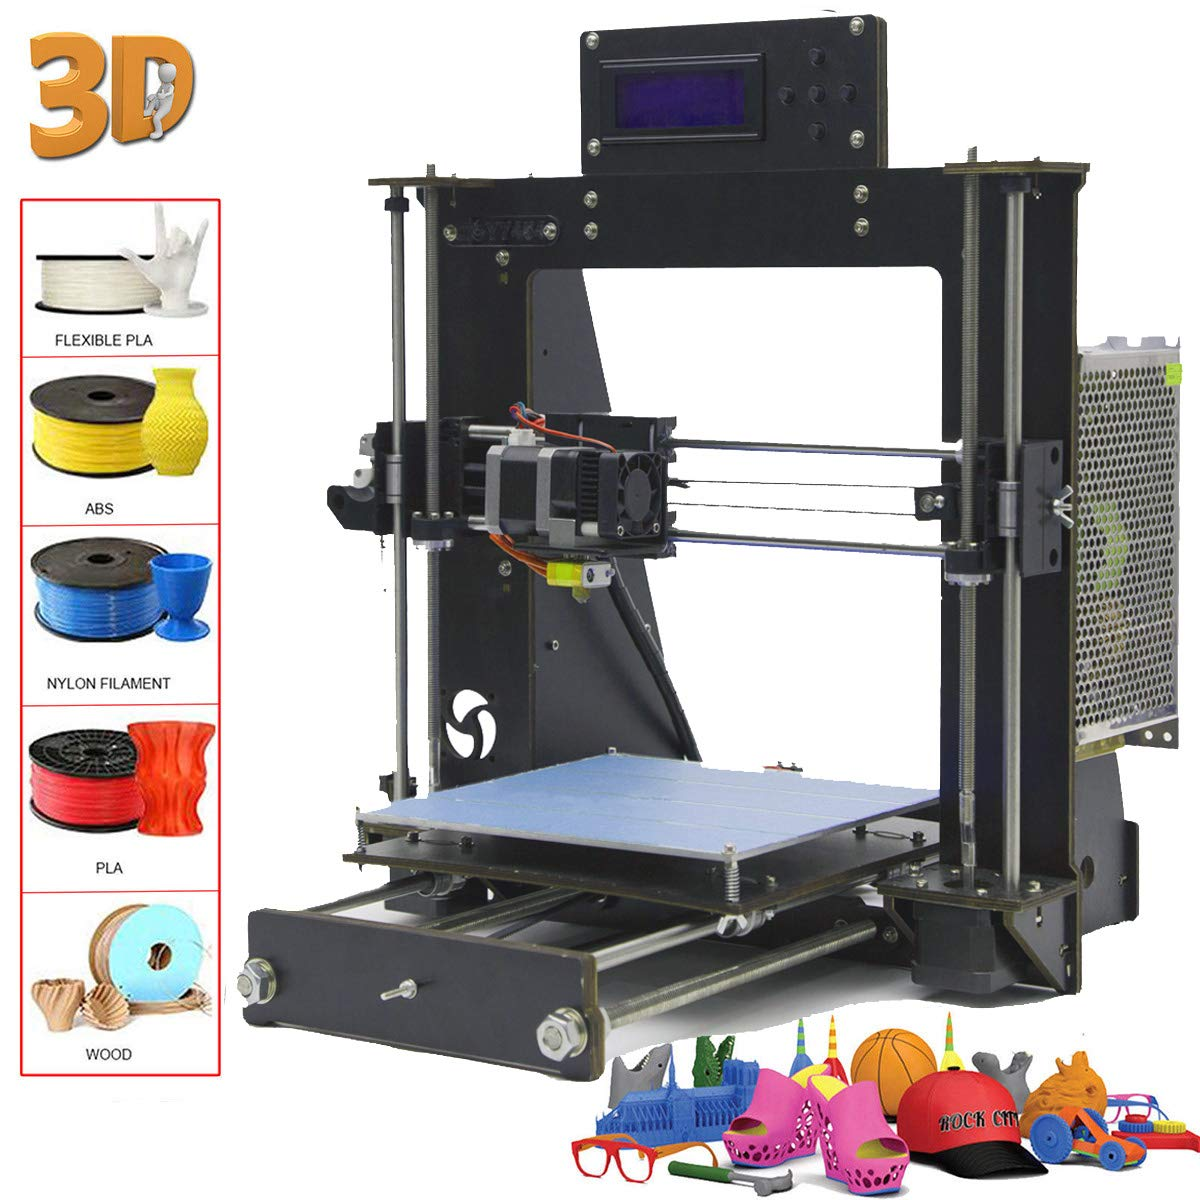 Win-Tinten 2018 New Desktop DIY 3D Printer Kits, High Accuracy Self-assembly, DIY Personal Portability 3D-Printers support CD Card included 1x1.75mm ABS/PLA Filament (View amazon detail page)